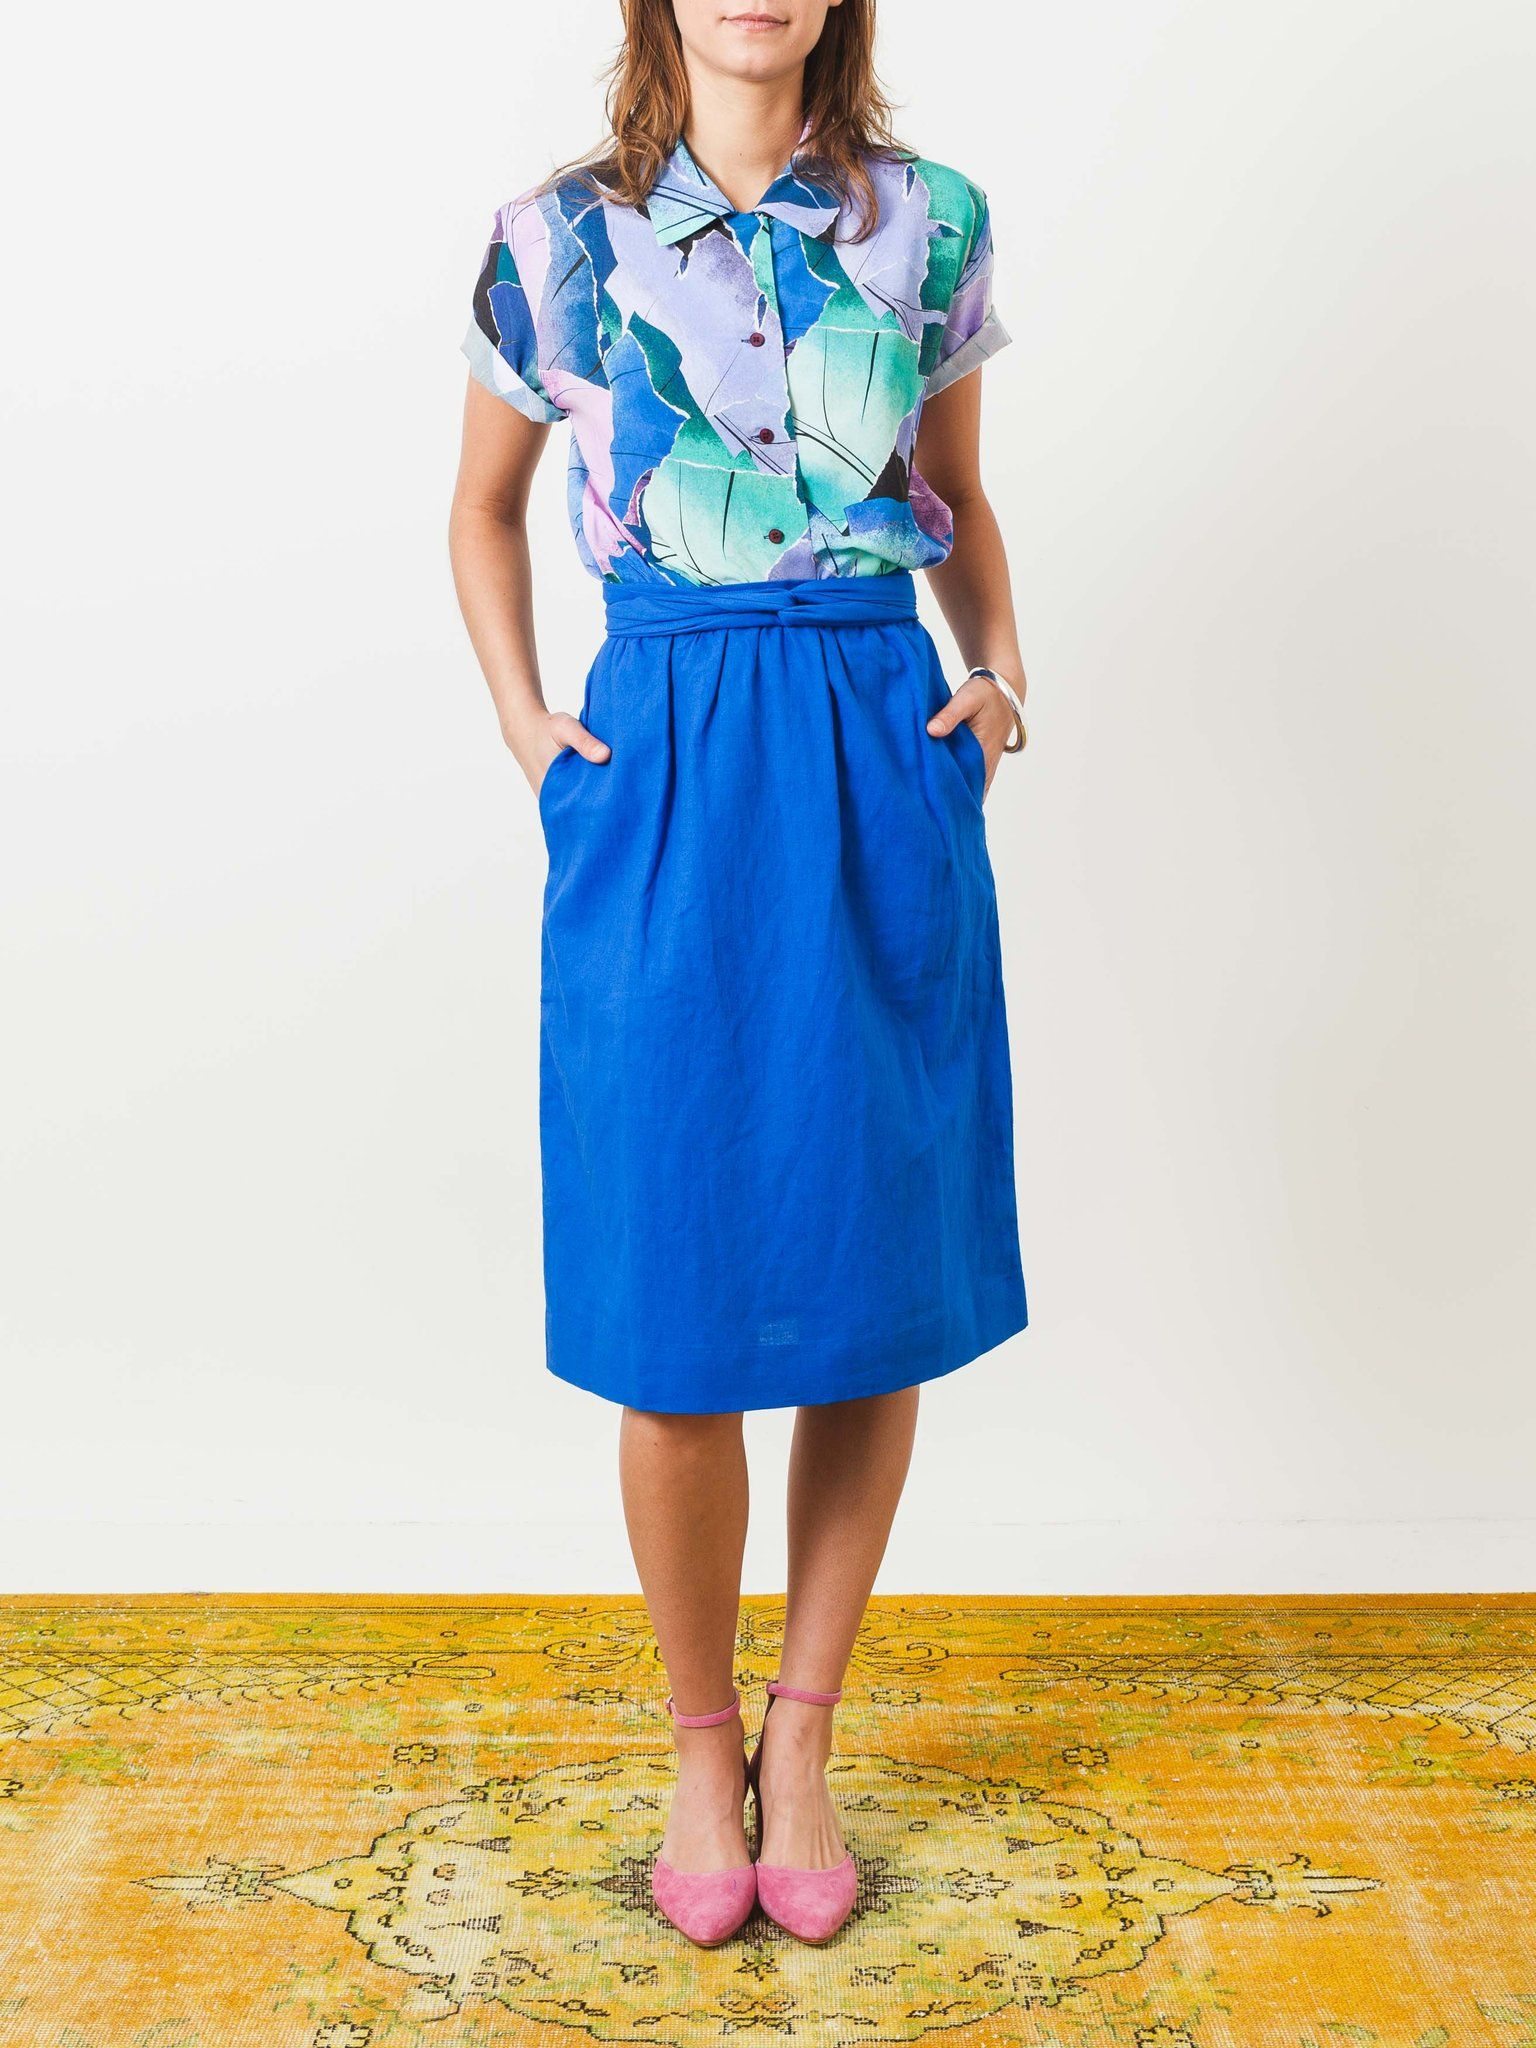 55b43e1021 rachel-antonoff-blue-toby-peg-skirt-on-body | Fashion likes | Skirts ...